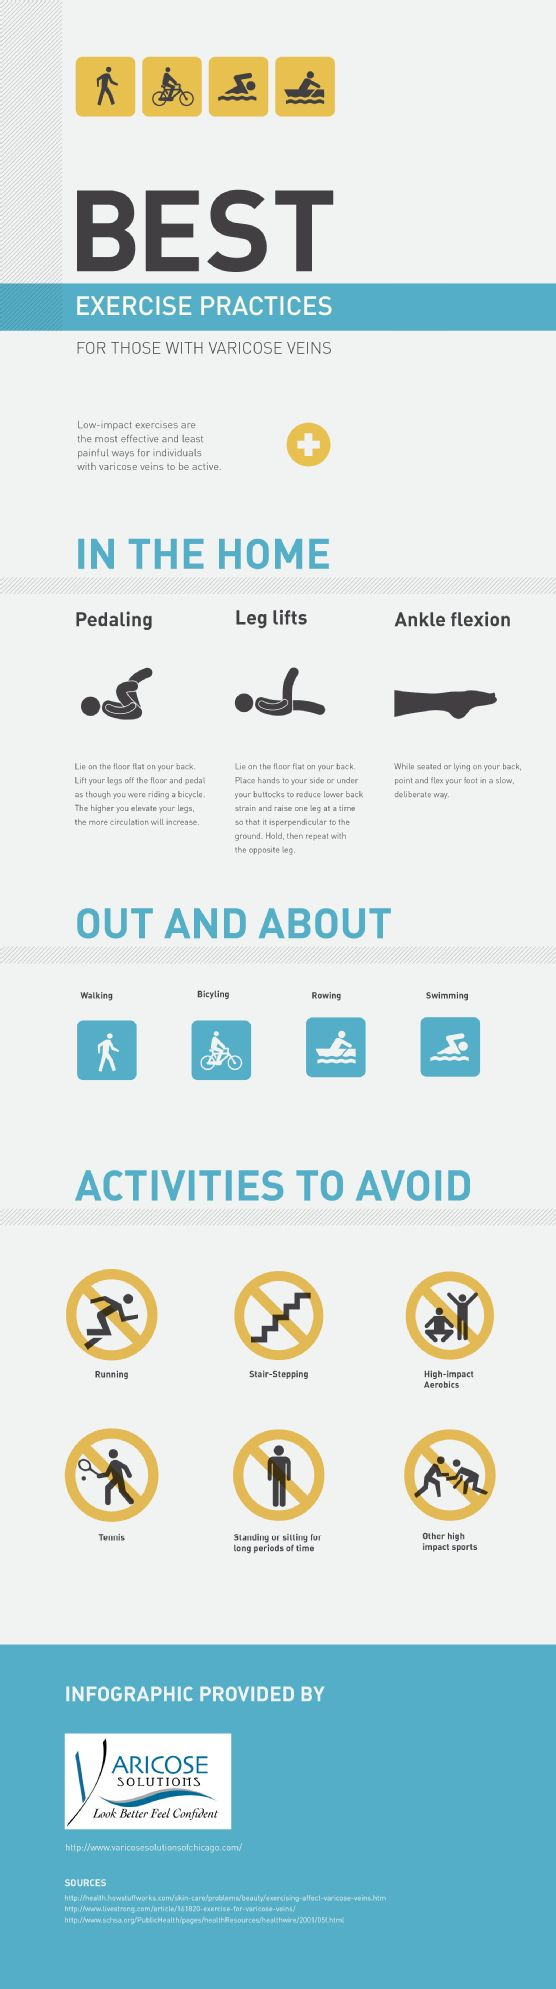 Did you know that pedaling, leg lifts, and ankle flexion are low-impact exercises that you can do at home? Just because you have varicose veins does not mean you have to skip working out! Learn more in this infographic from a vein clinic in Chicago: http://www.varicosesolutionsofchicago.com/635223/2013/01/29/best-exercise-practices-for-those-with-varicose-veins-infographic.html